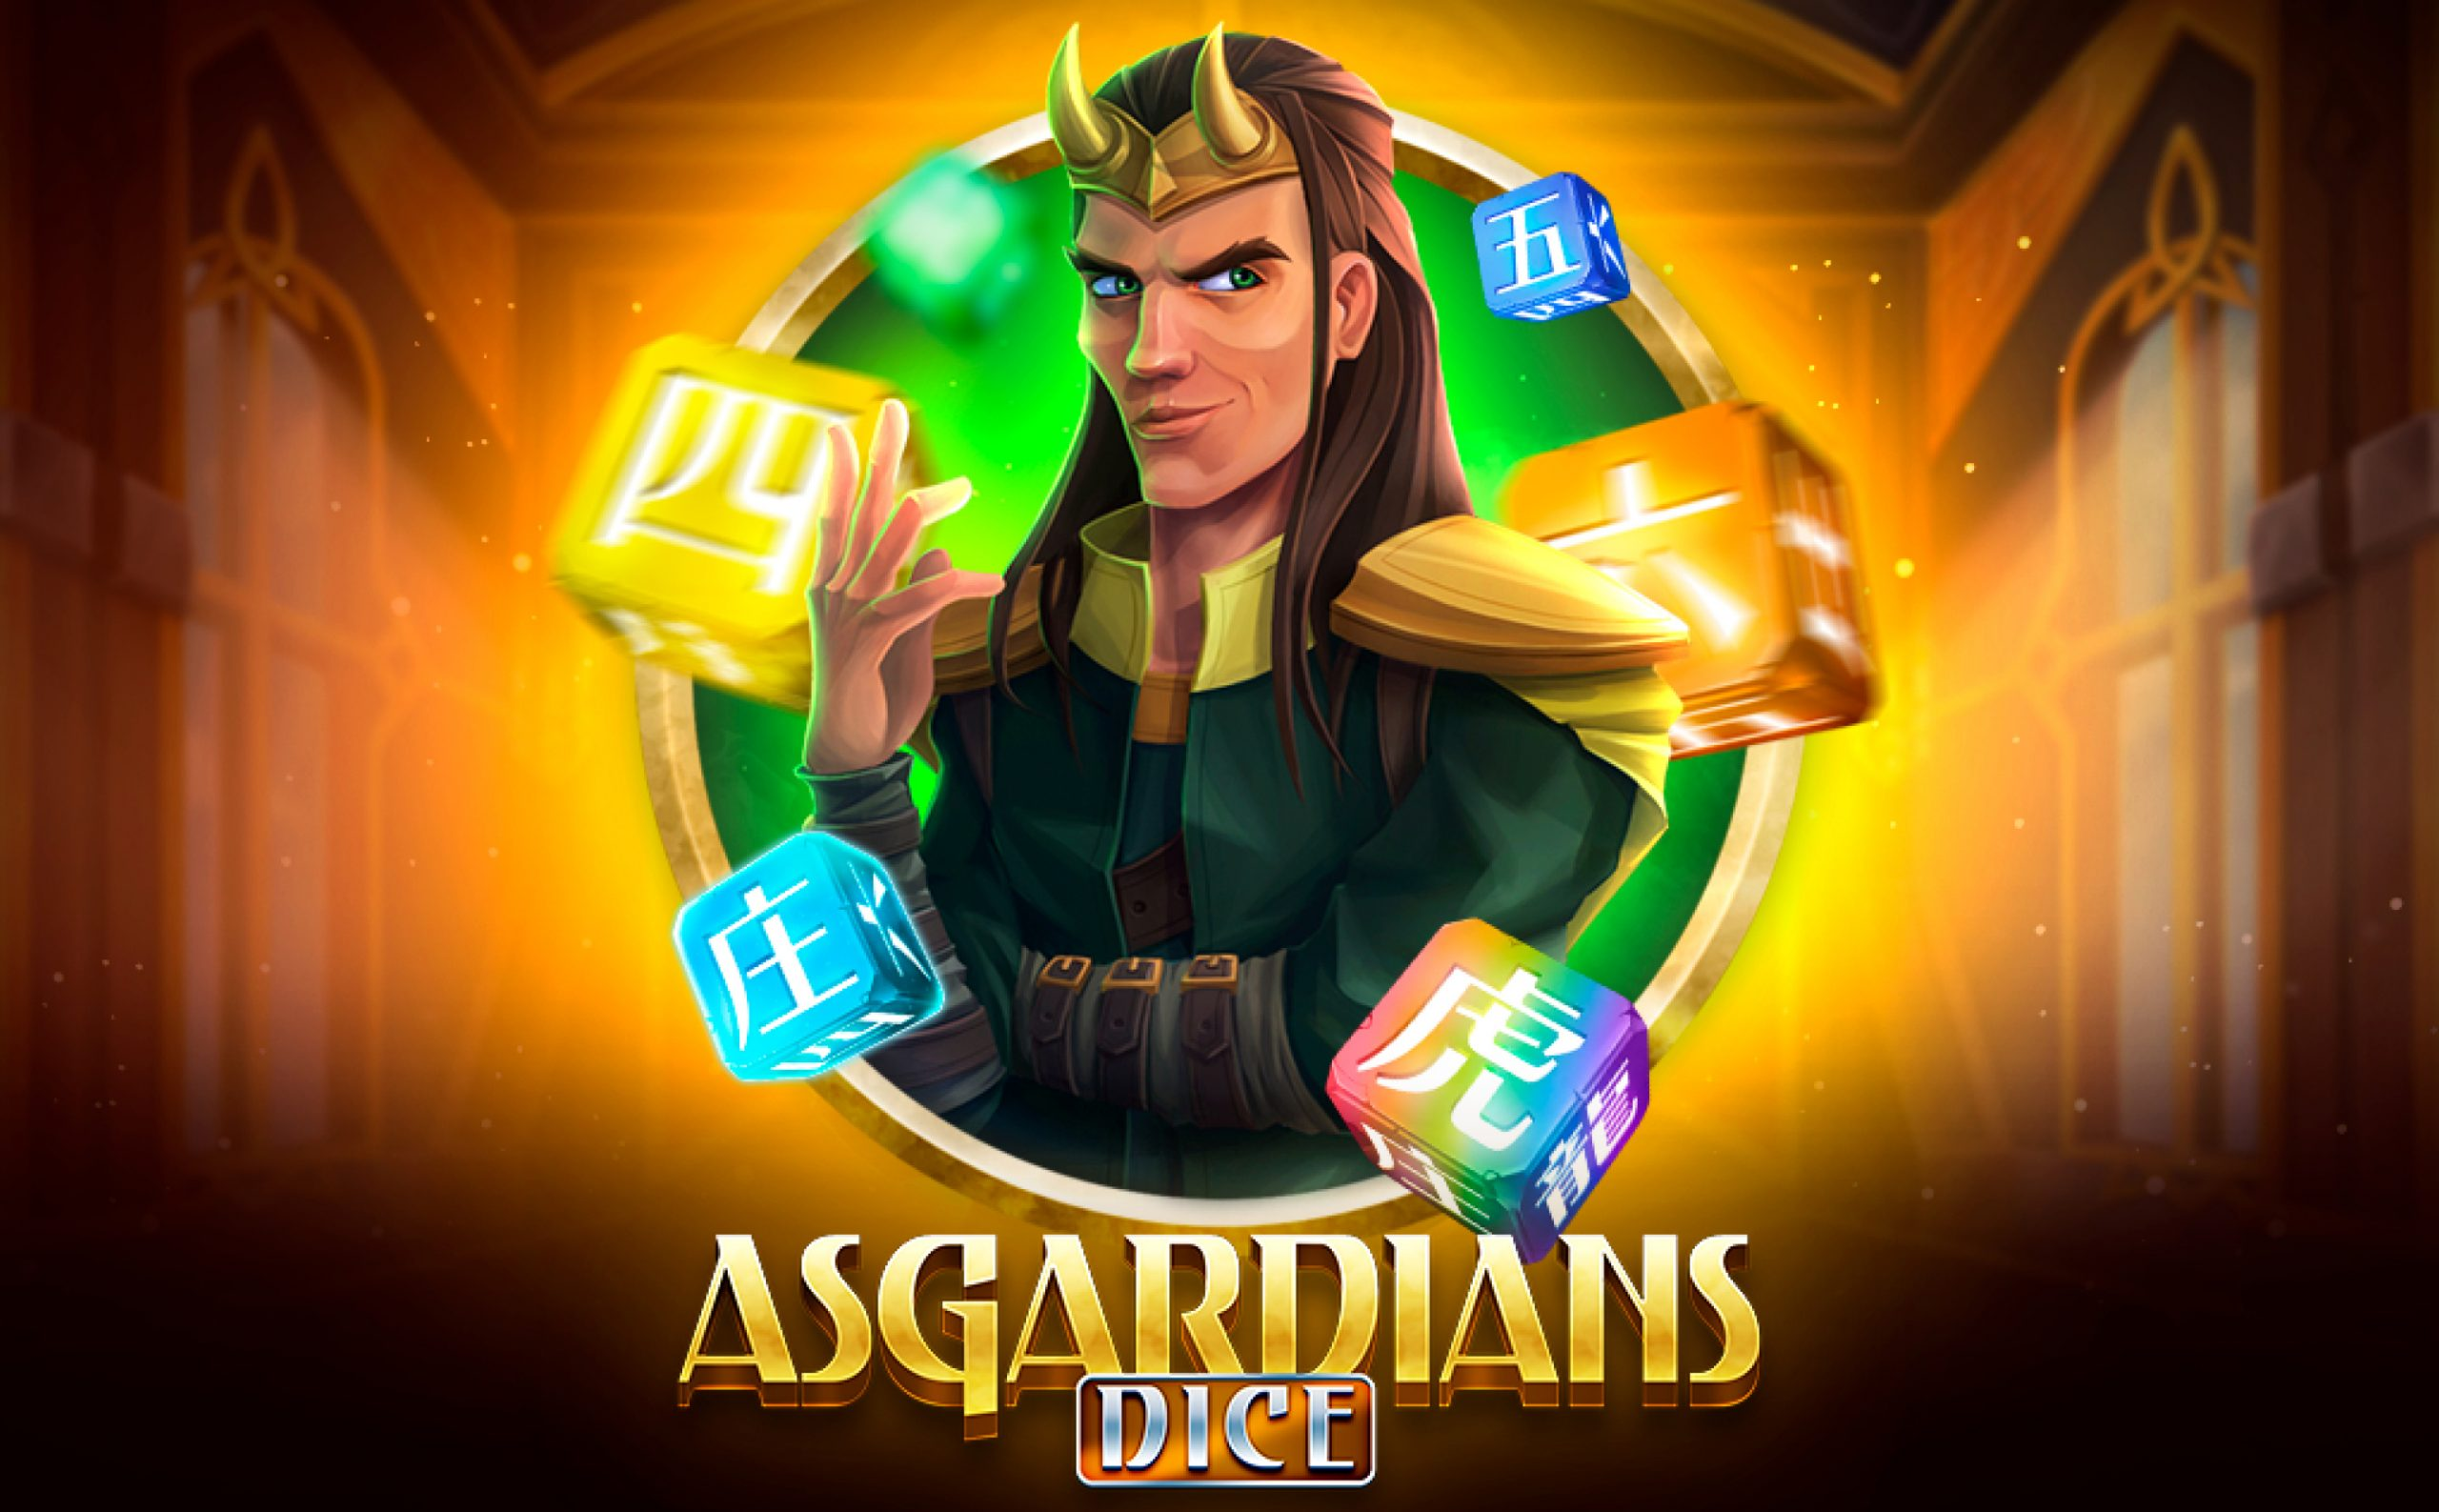 Asgardians Dice is a thunderous casino game on betFIRST Casino inspired by the Norse Gods and Goddesses